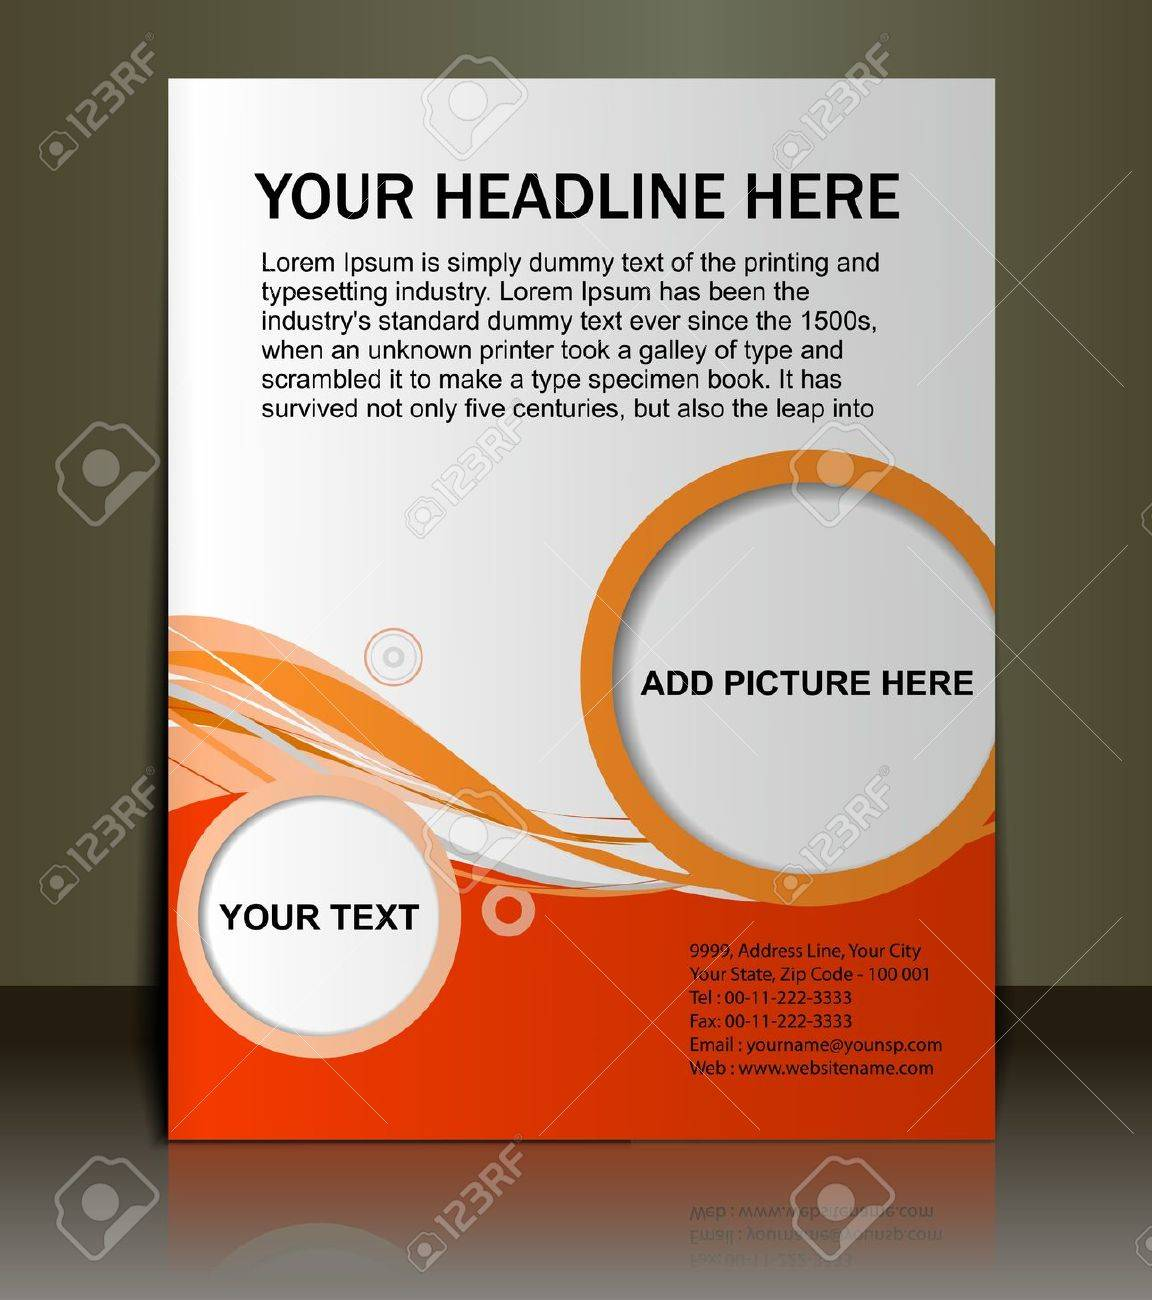 Poster design template free - Leaflet Design Template Vector Editable Presentation Of Flyerposter Design Content Background